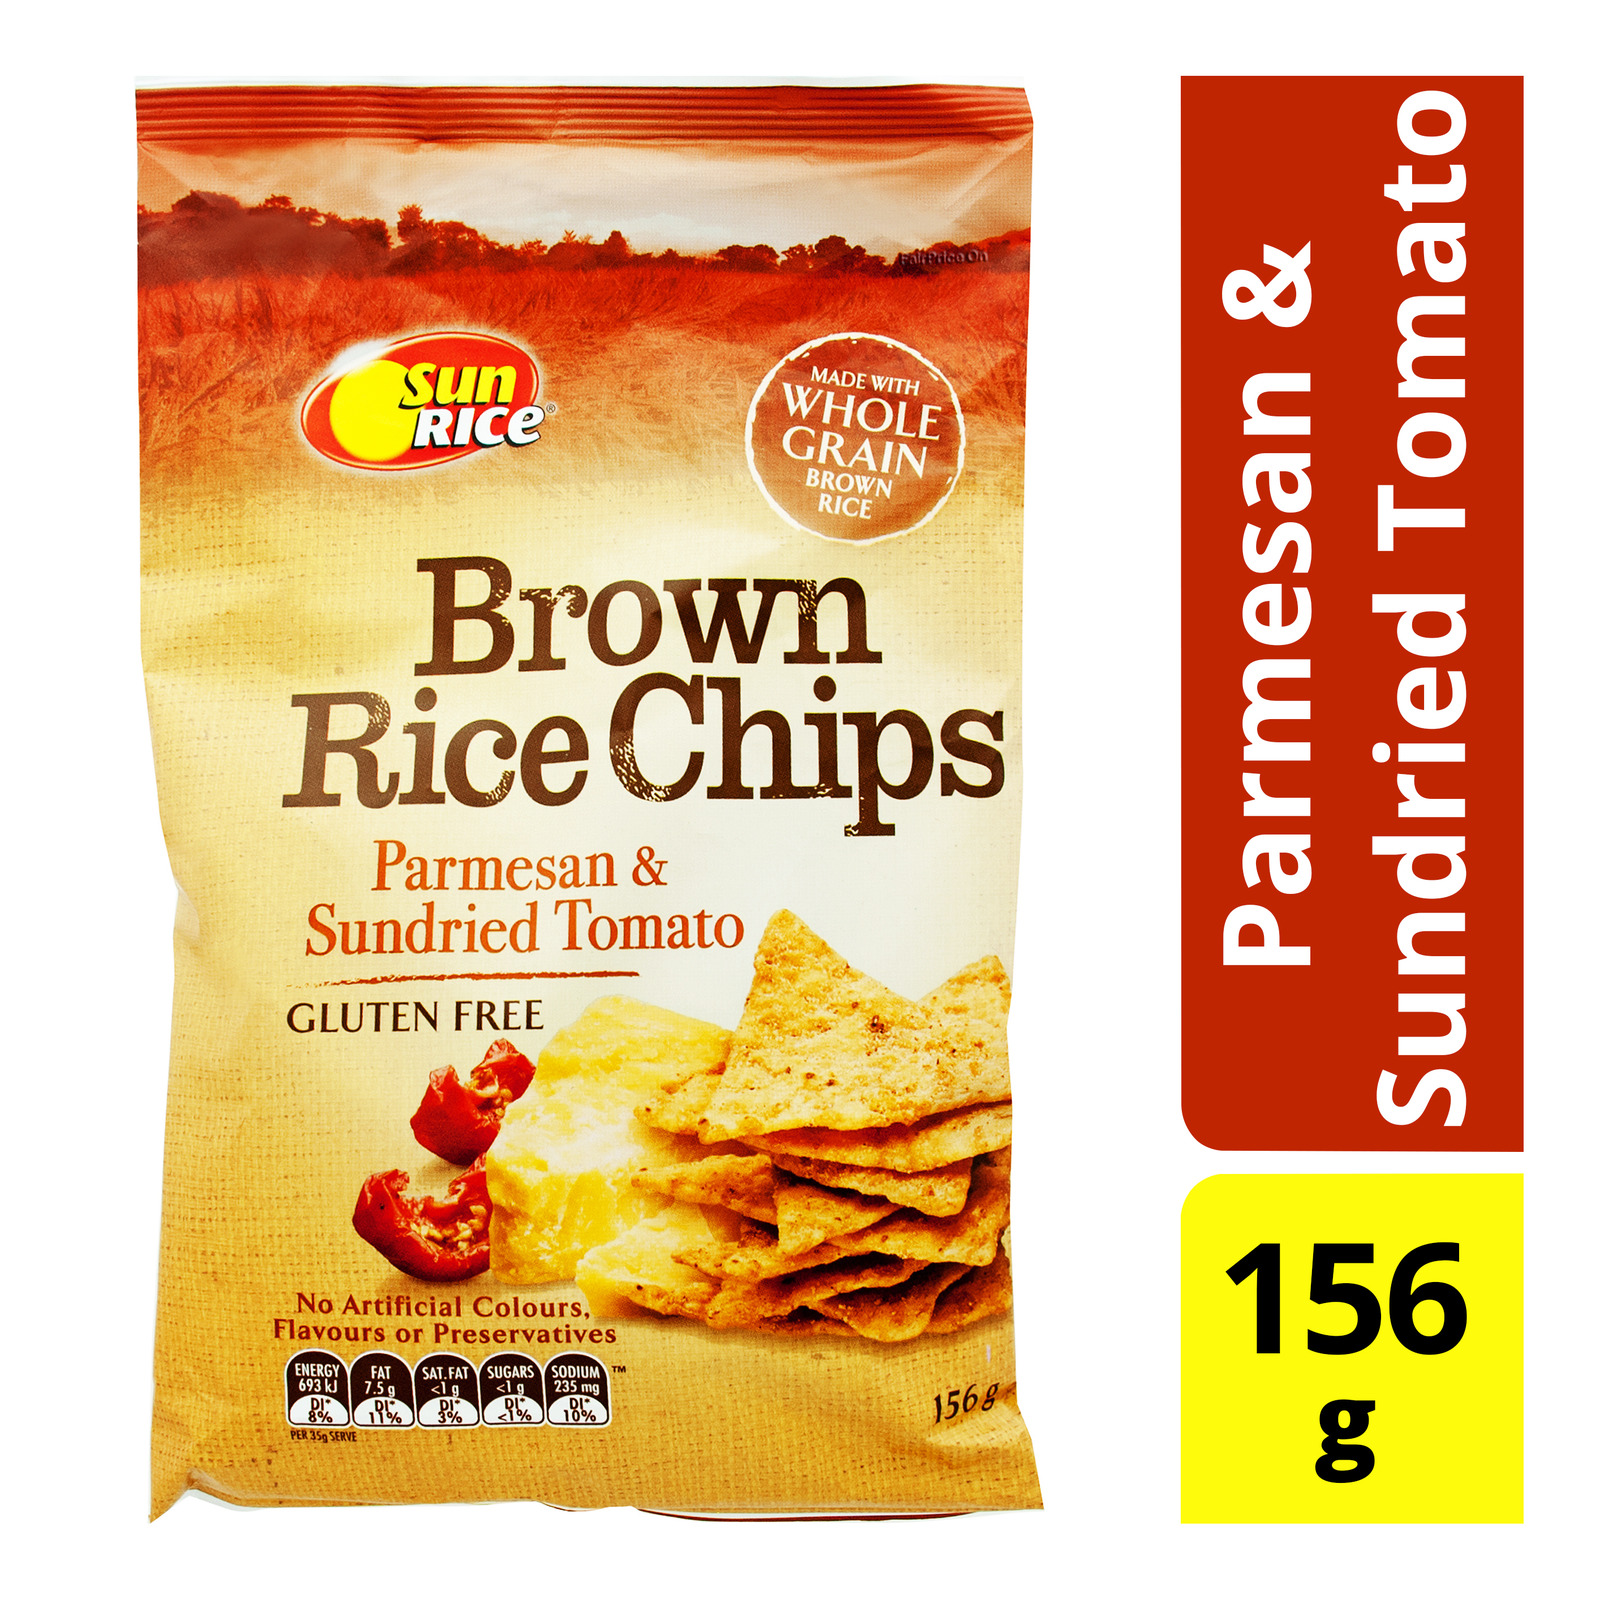 SunRice Brown Rice Chips - Parmesan & Sundried Tomato